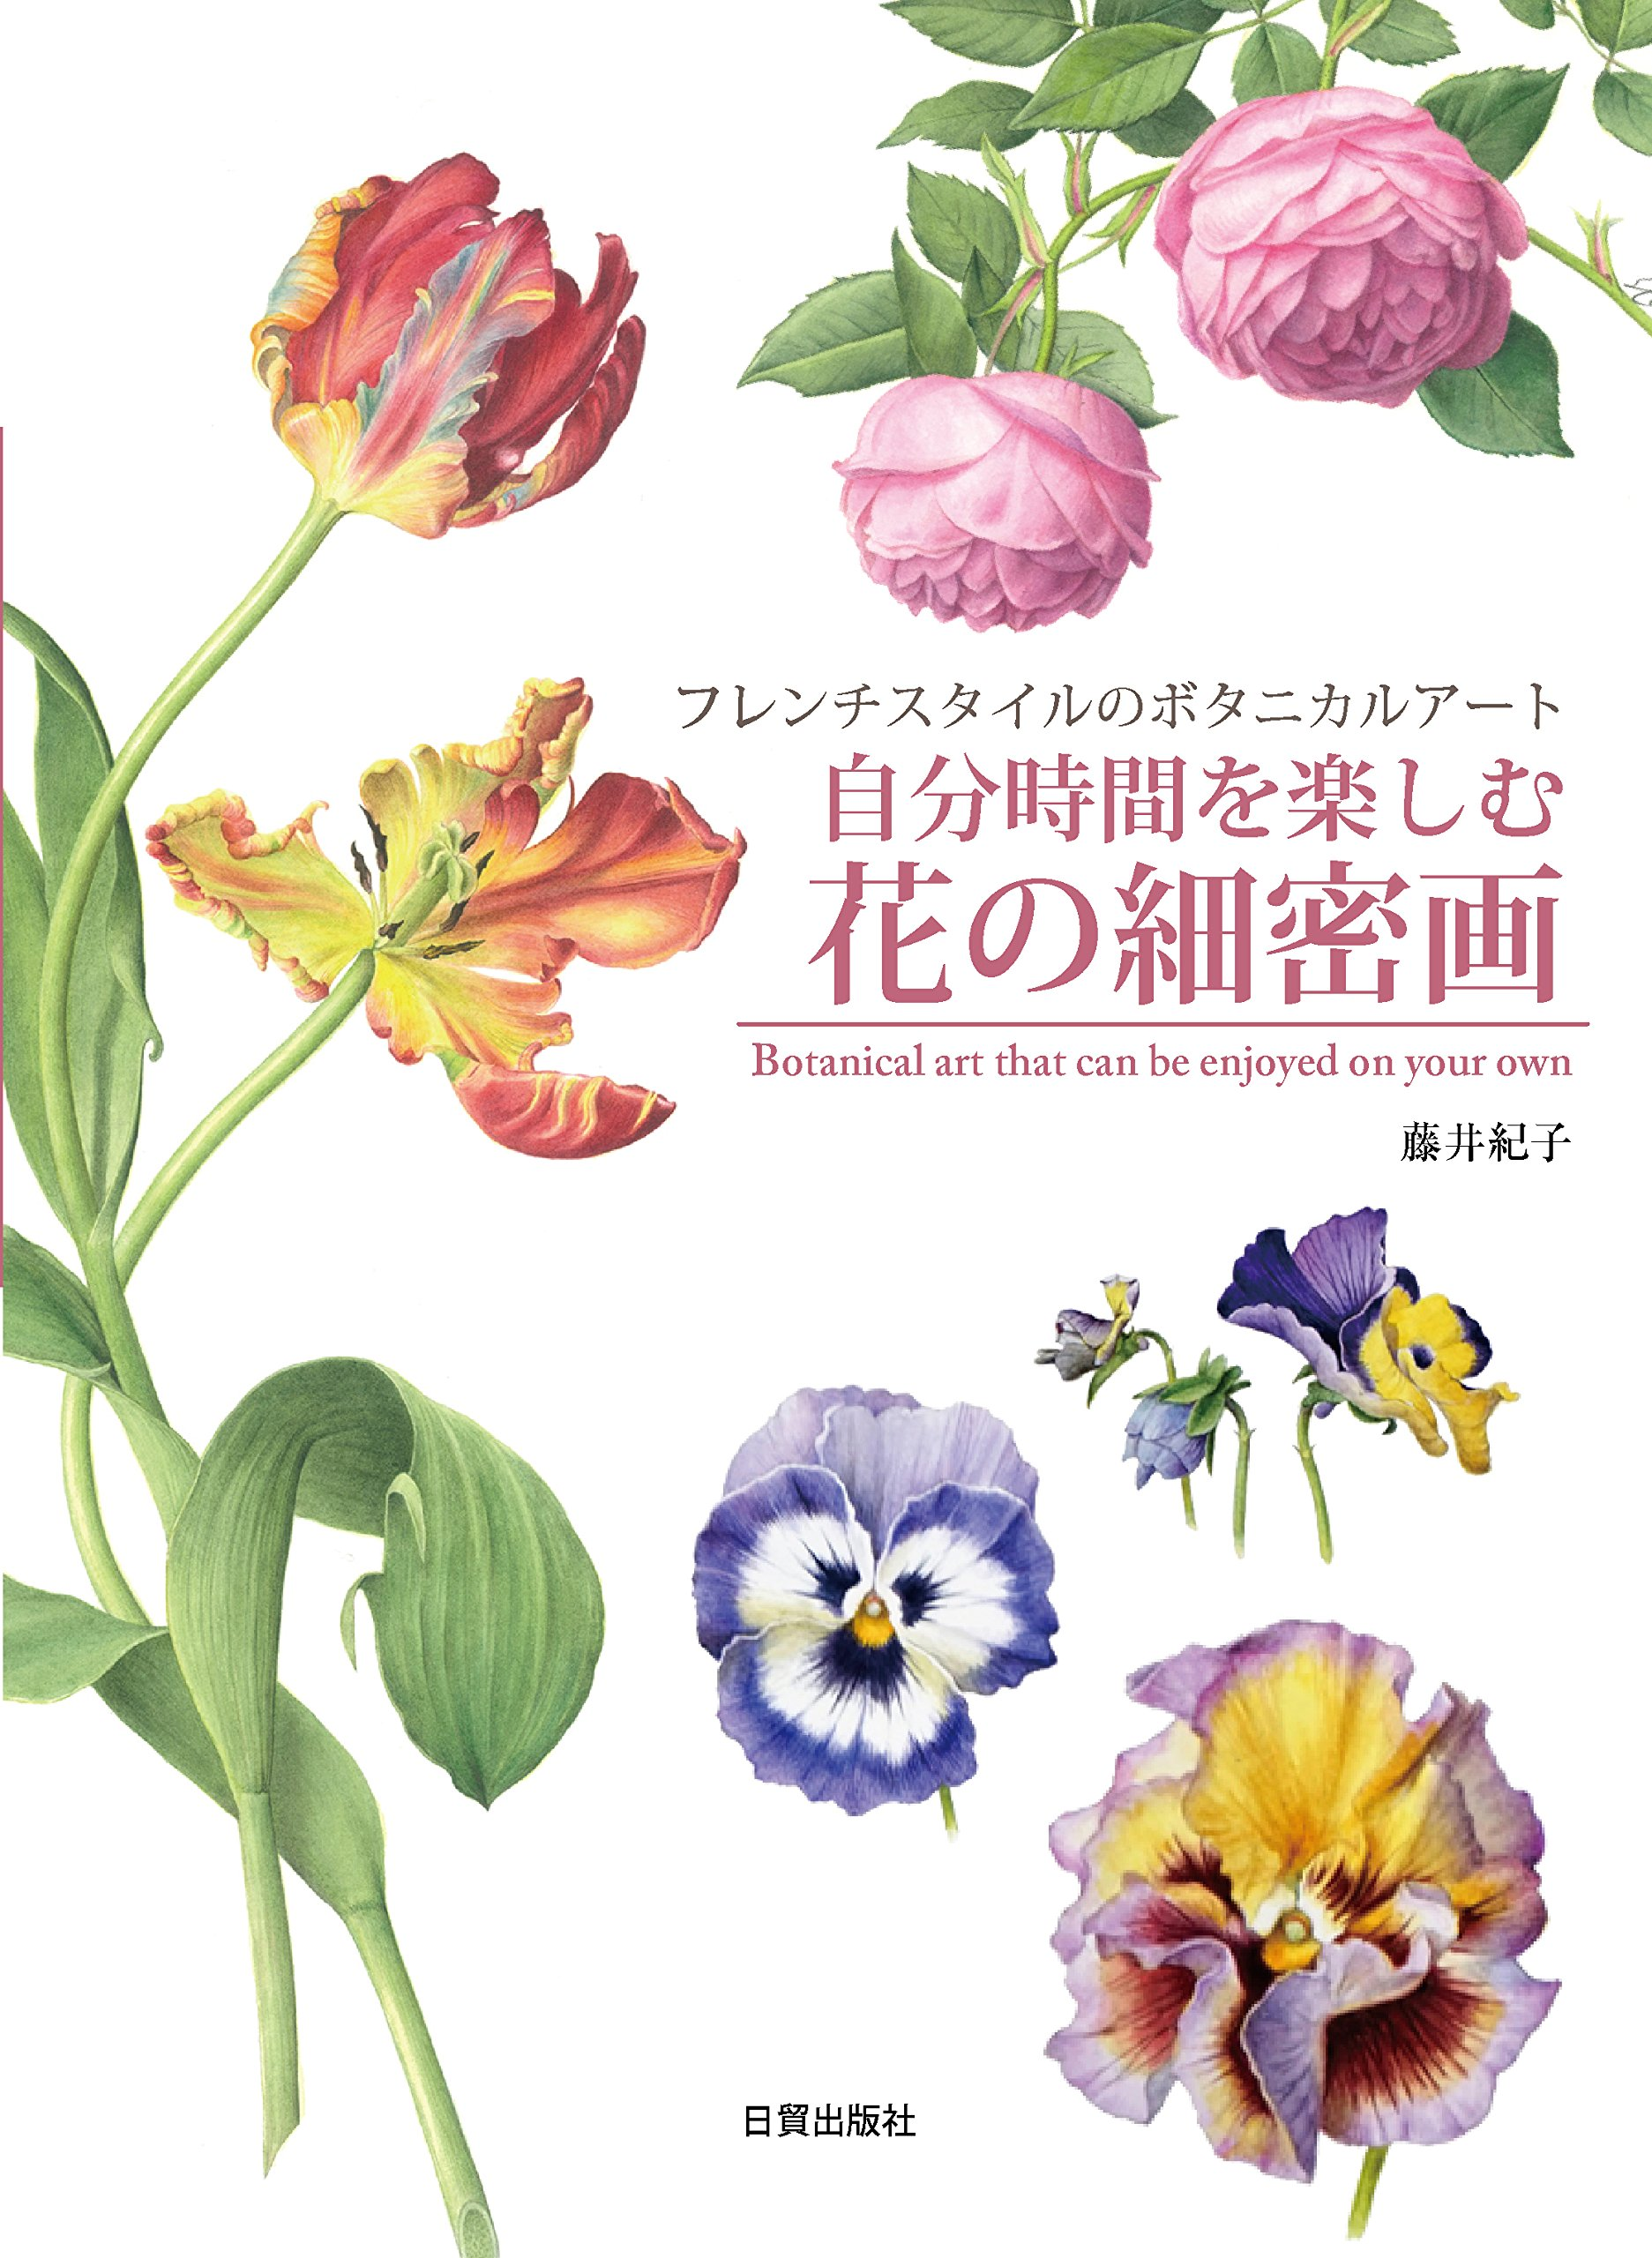 Flower is fine painting (Botanical art of French style)